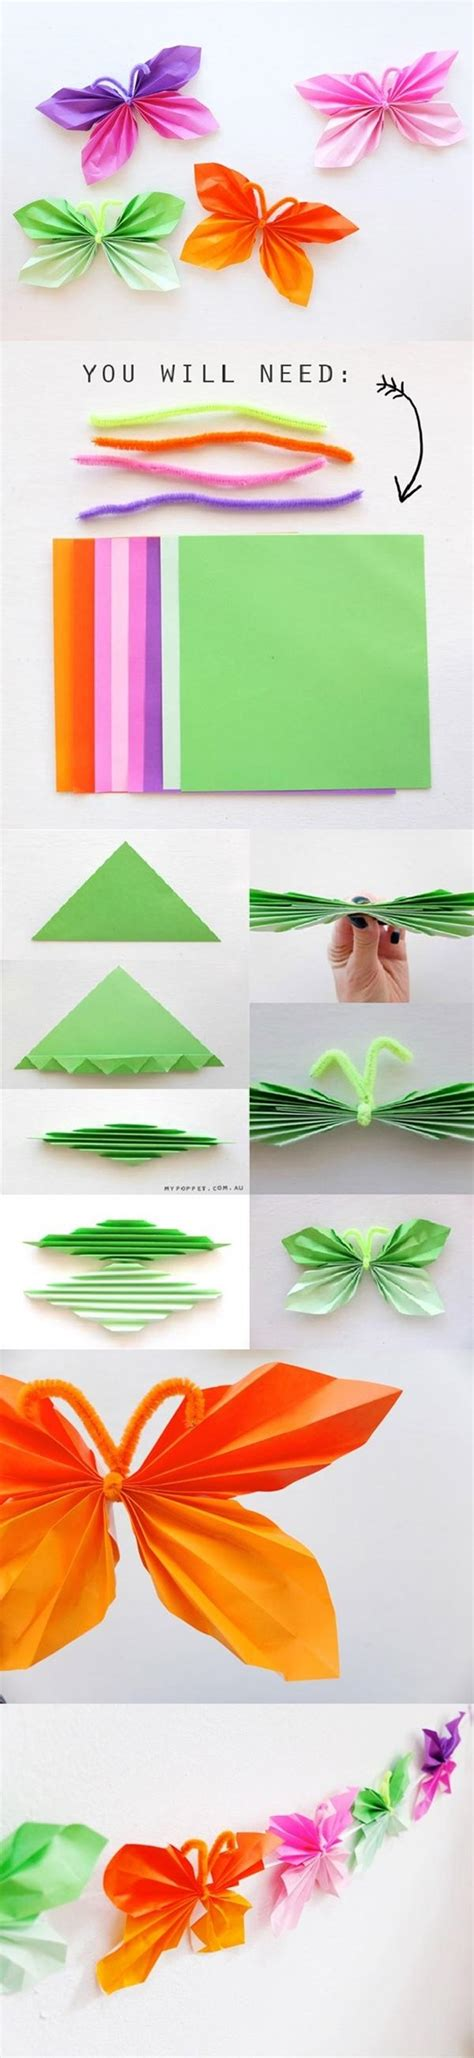 Paper Craft Butterflies - colorful diy butterfly crafts projects to make your